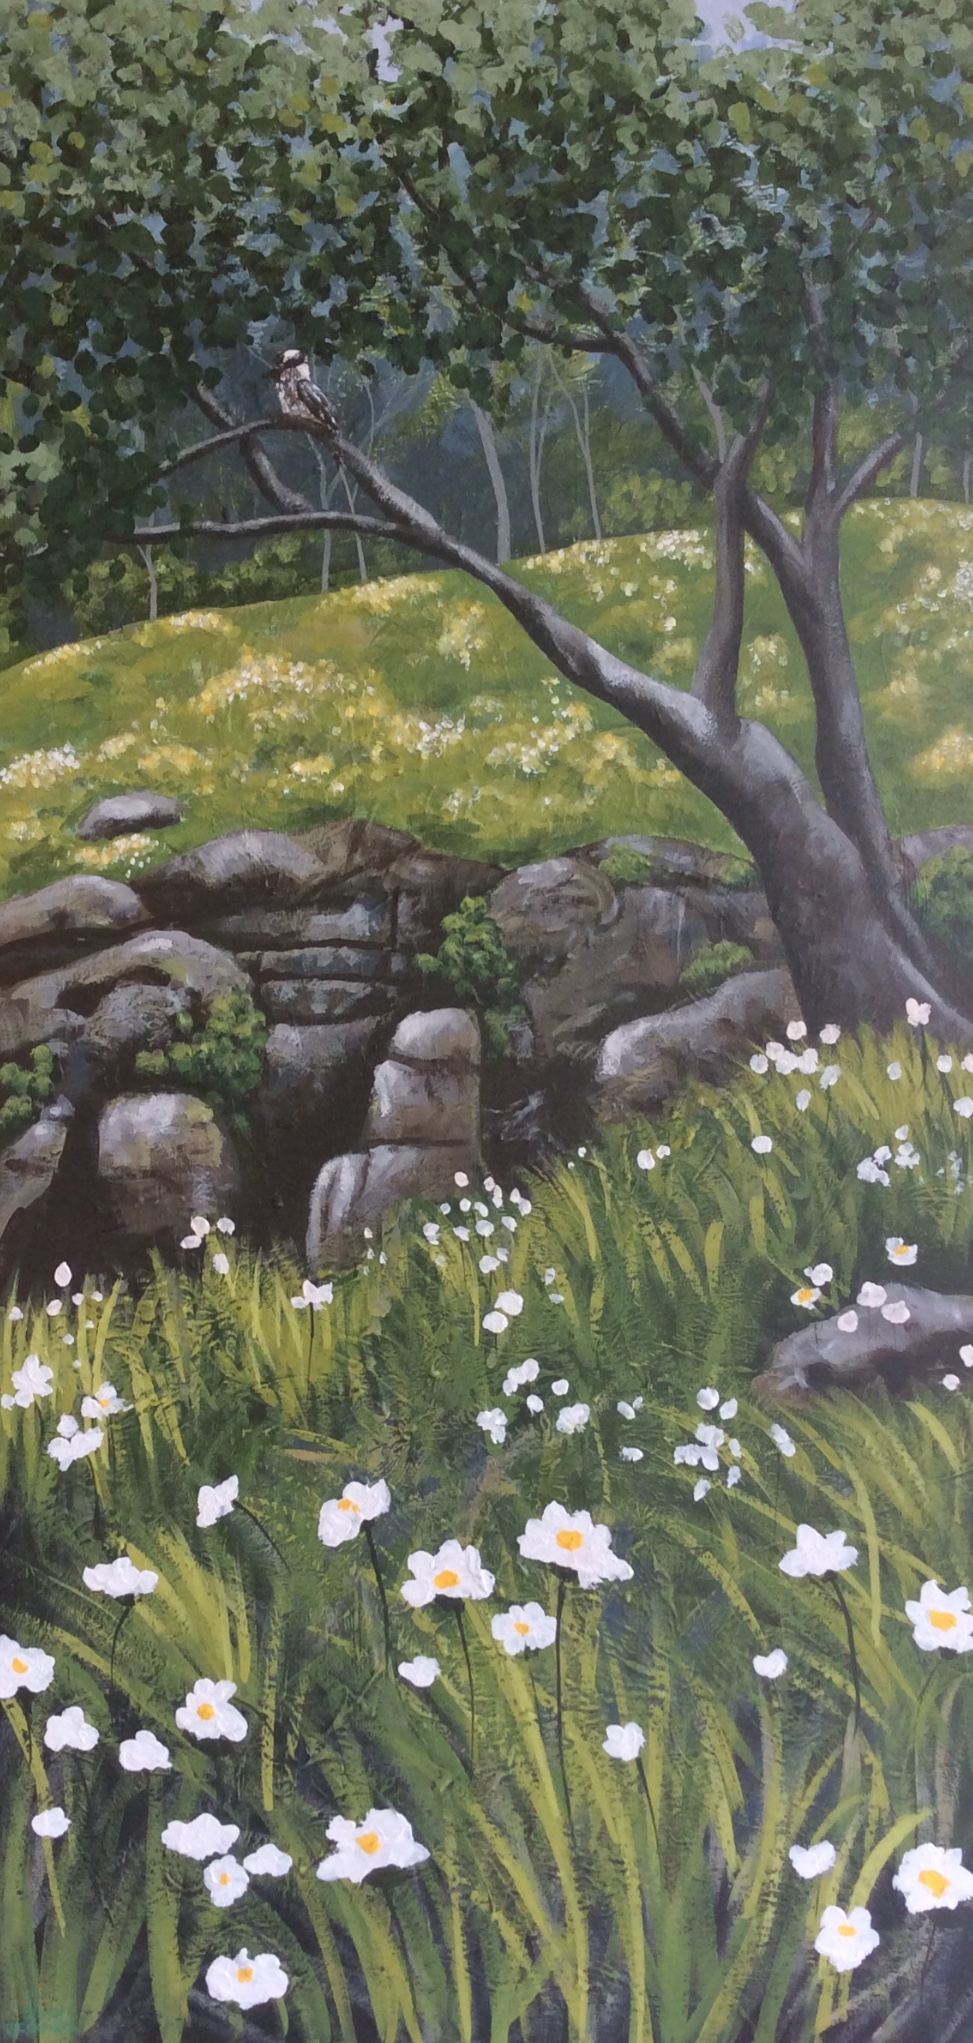 Daisies by the Falls